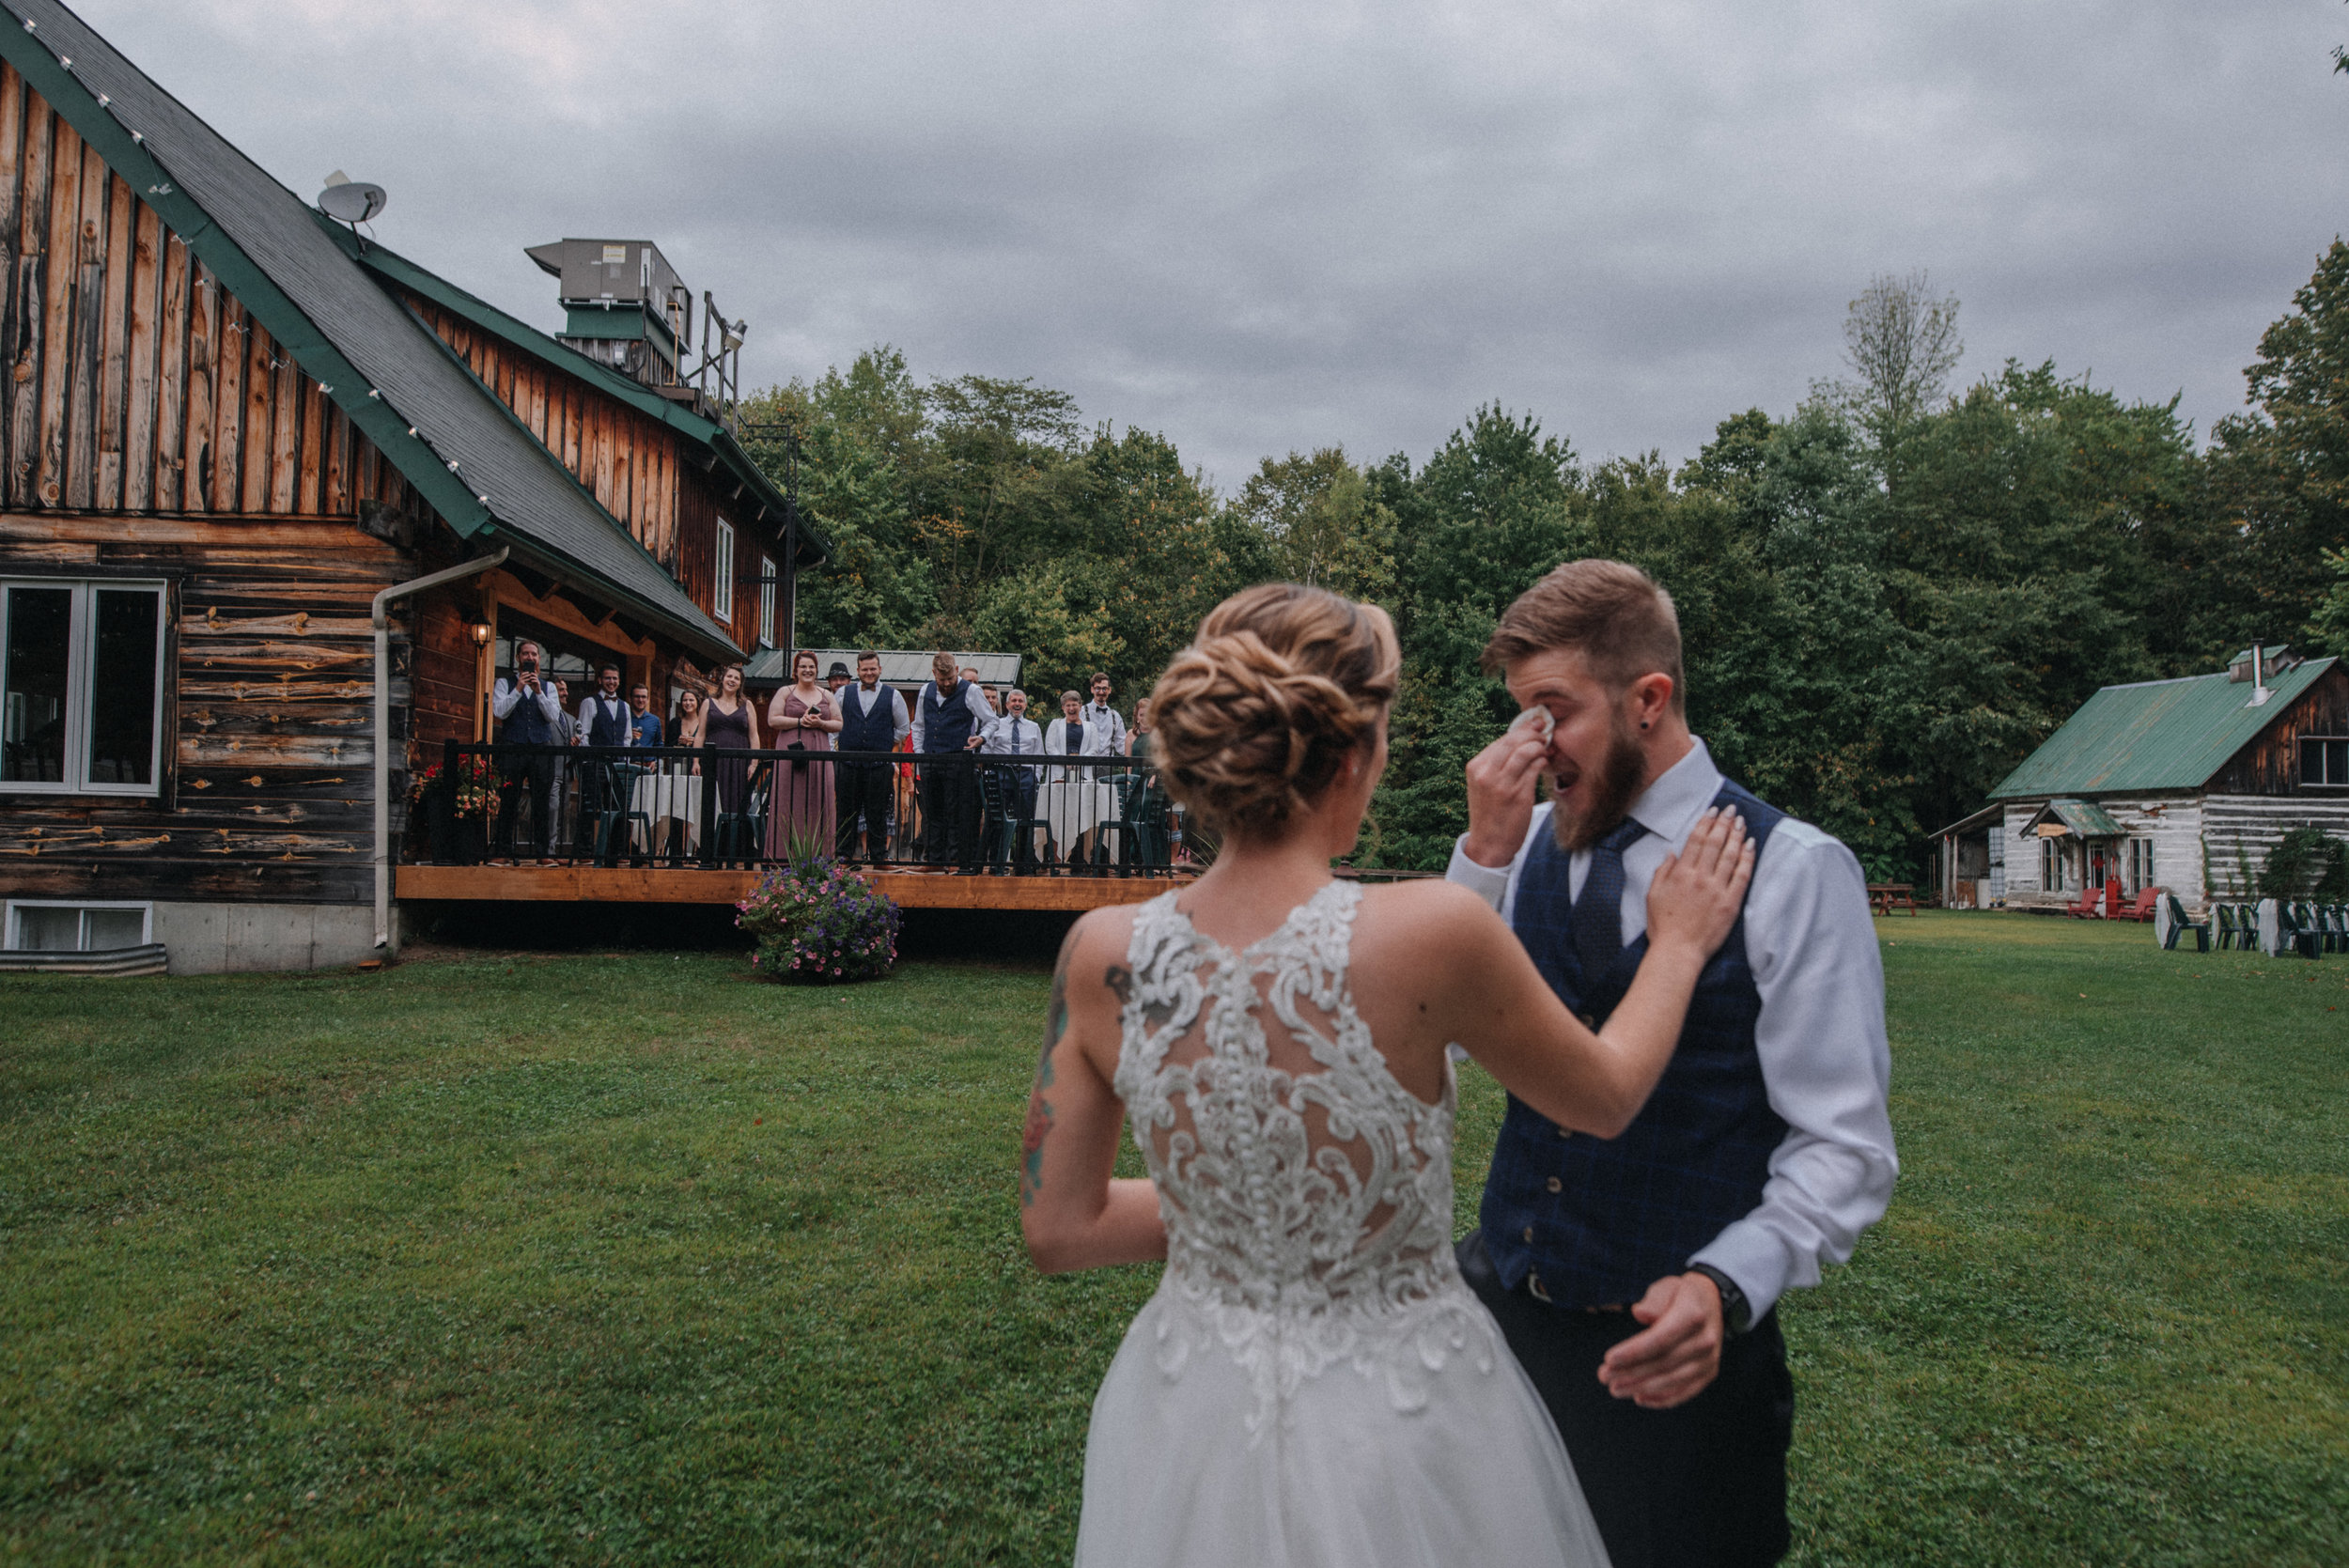 photographe_gatineau_mariage_ottawa_wedding_photographer_candid_natural_lifestyle_documentary_photography_photographie_naturelle_emotions_bride_intimate_elopment (29).JPG